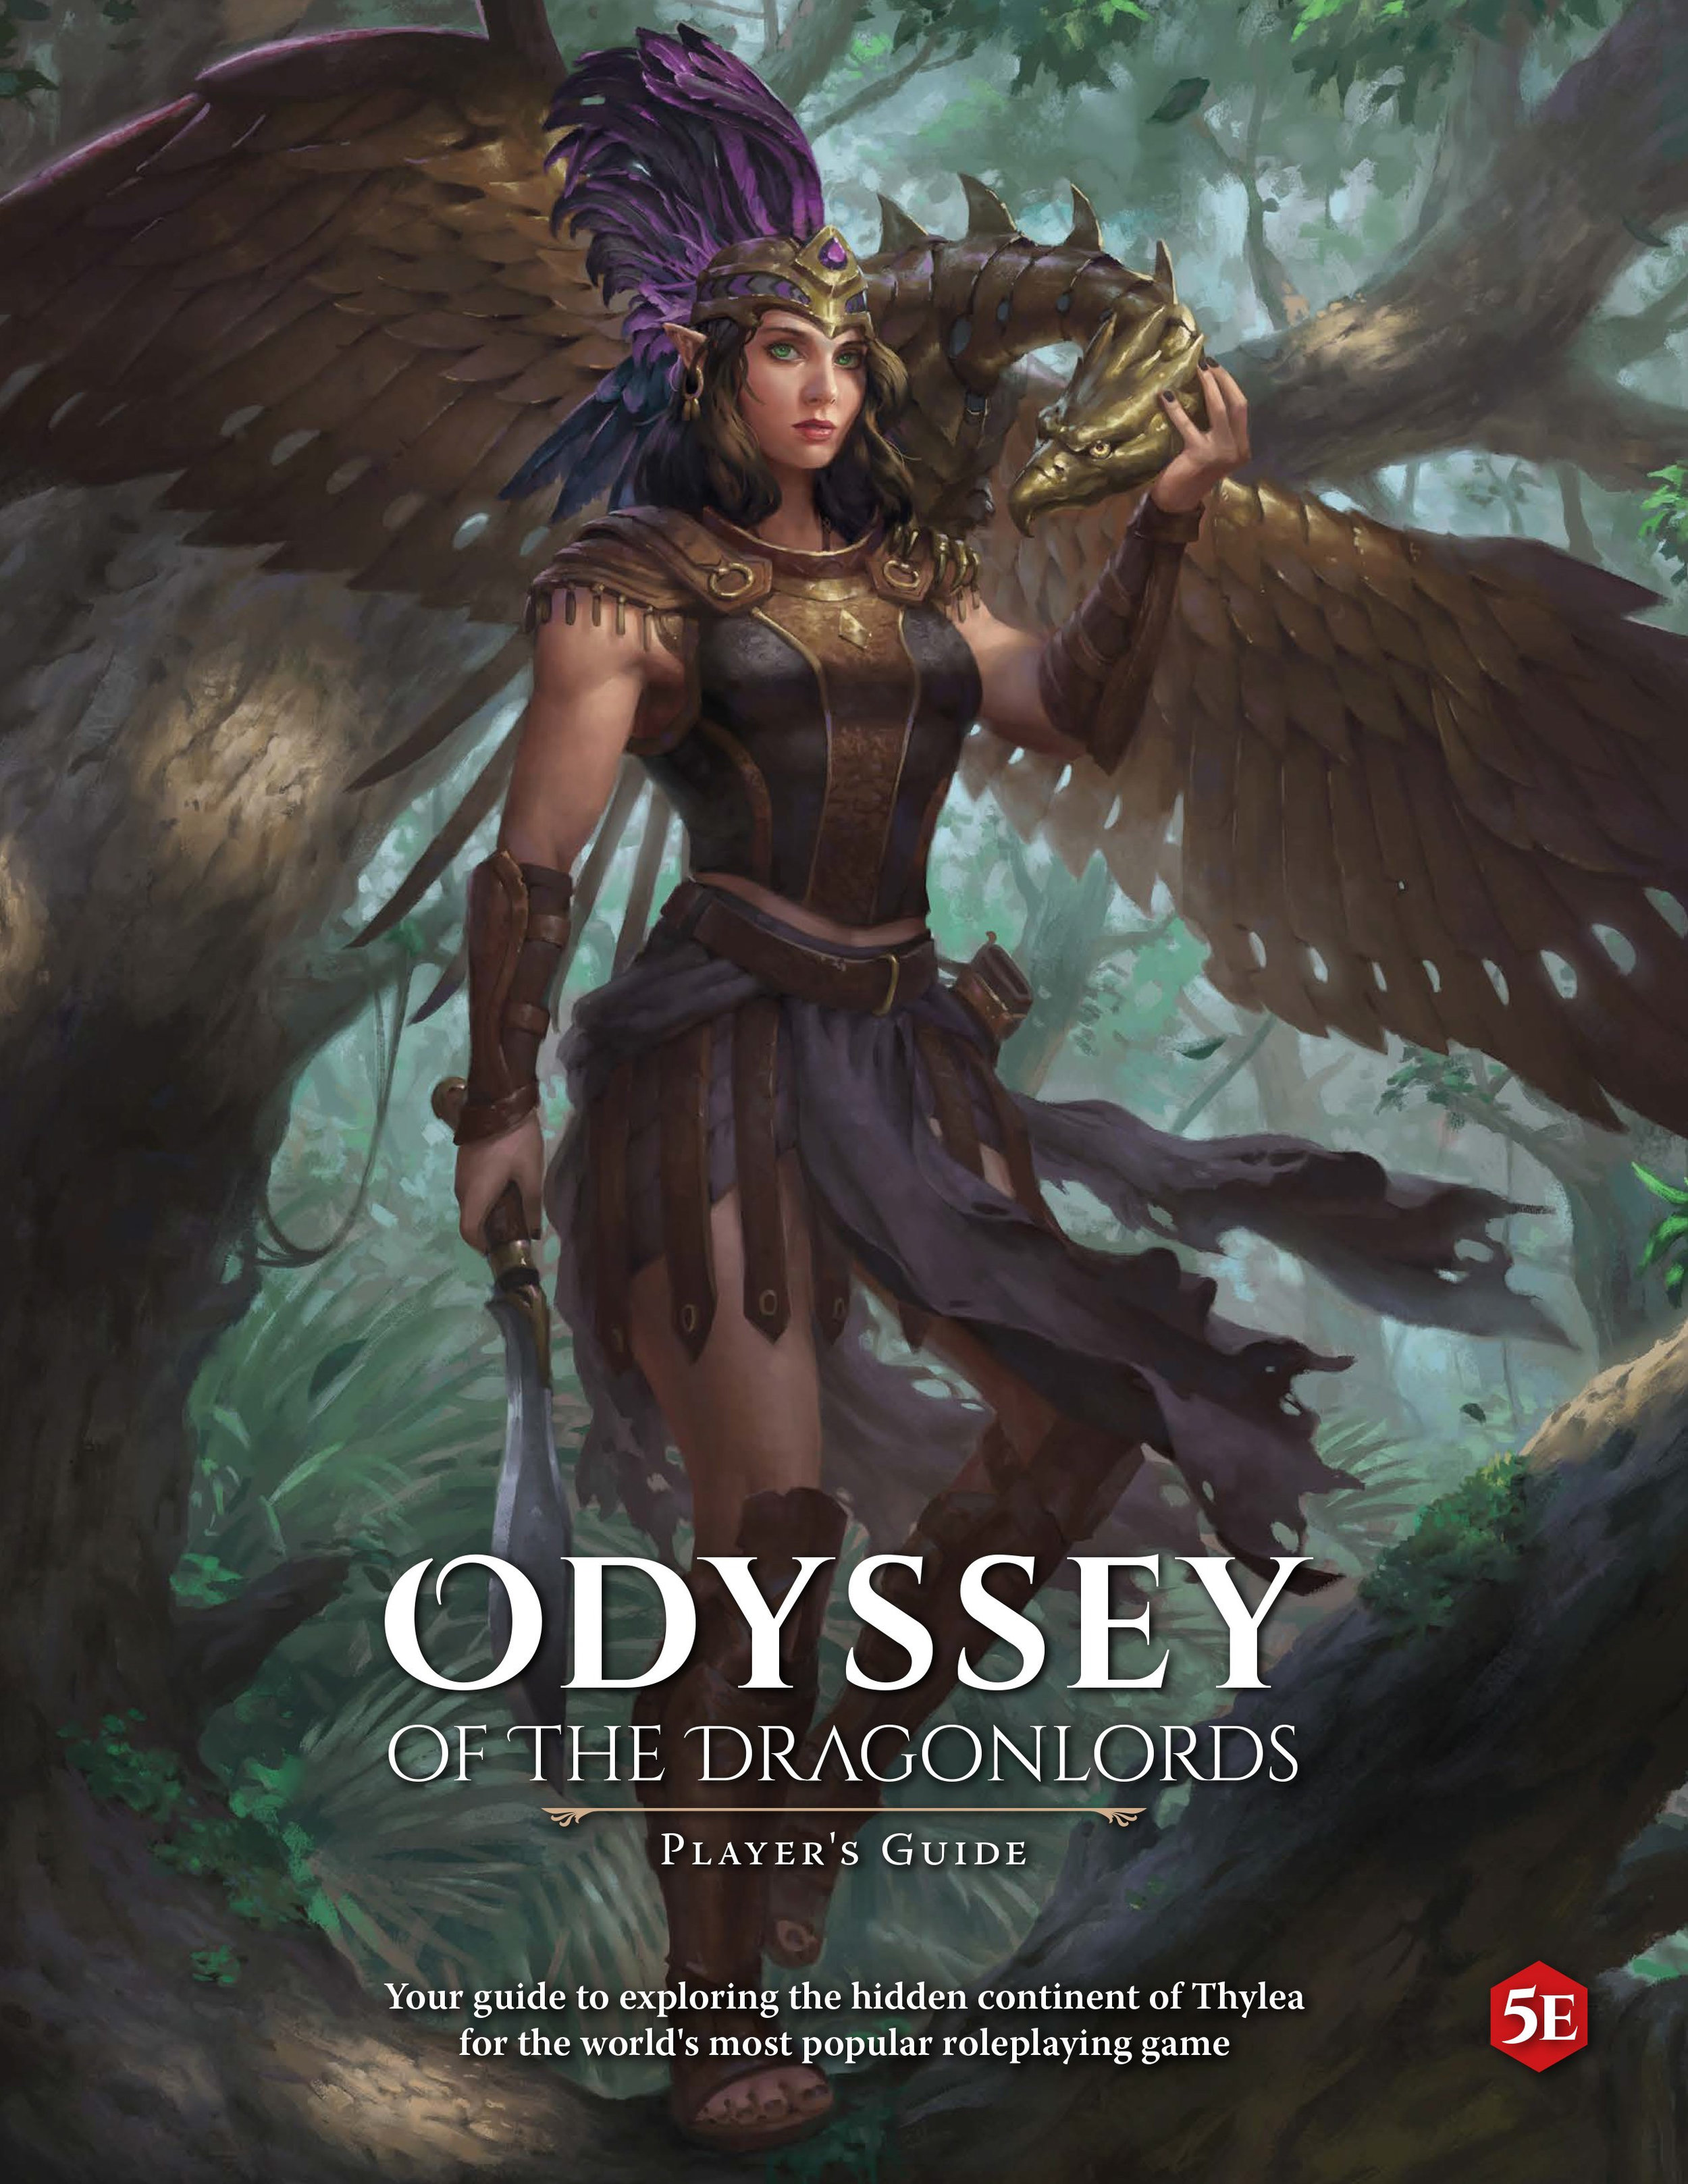 Odyssey of the Dragonlords Player's Guide